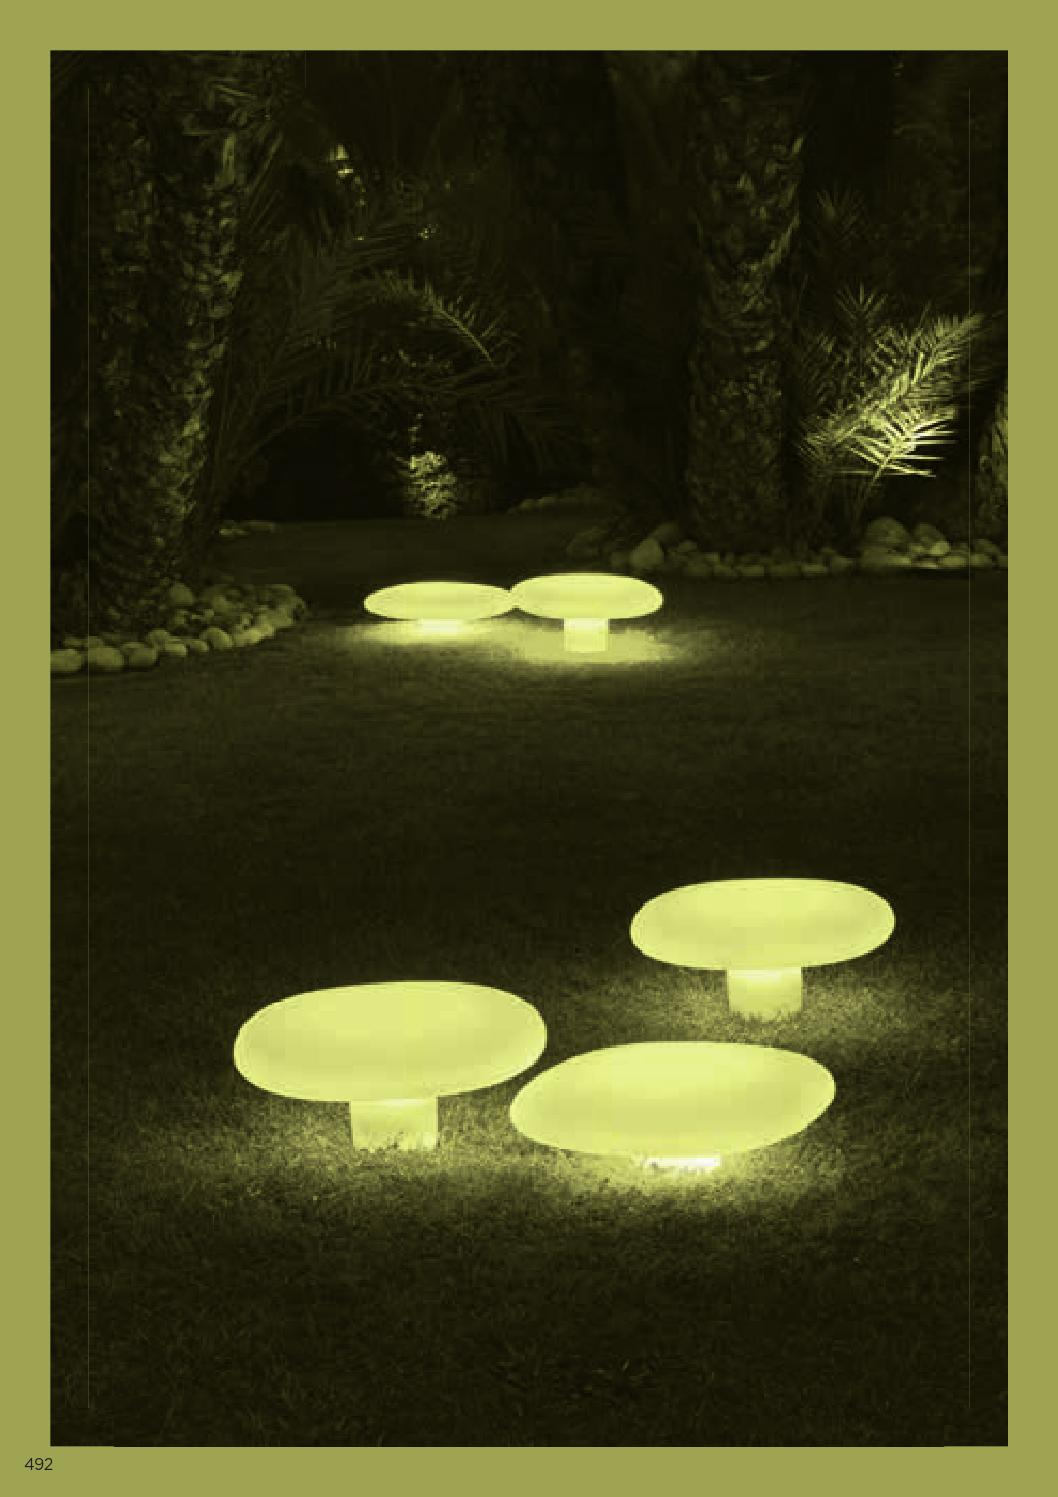 Led-wandleuchte Parala Leds Outdoor 2014 By Kes Lighting Issuu